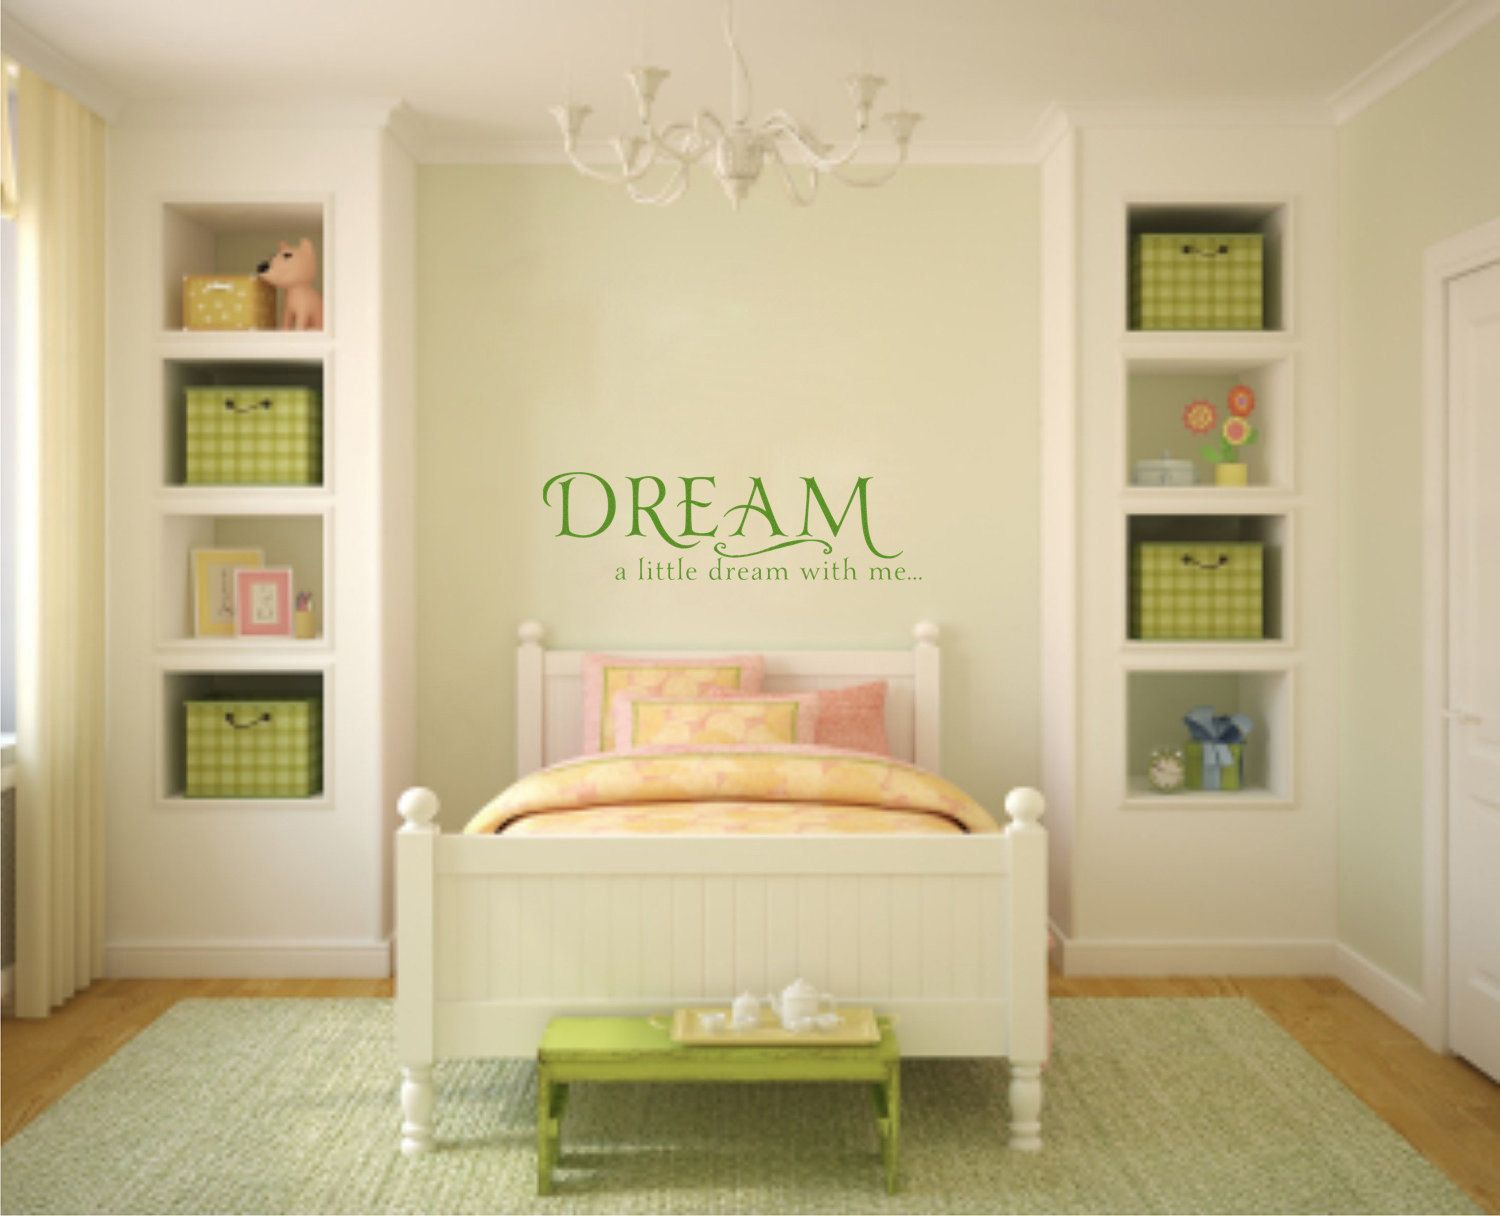 Dream A Little Dream with Me Wall Decal Sticker Lettering. $35.00 ...